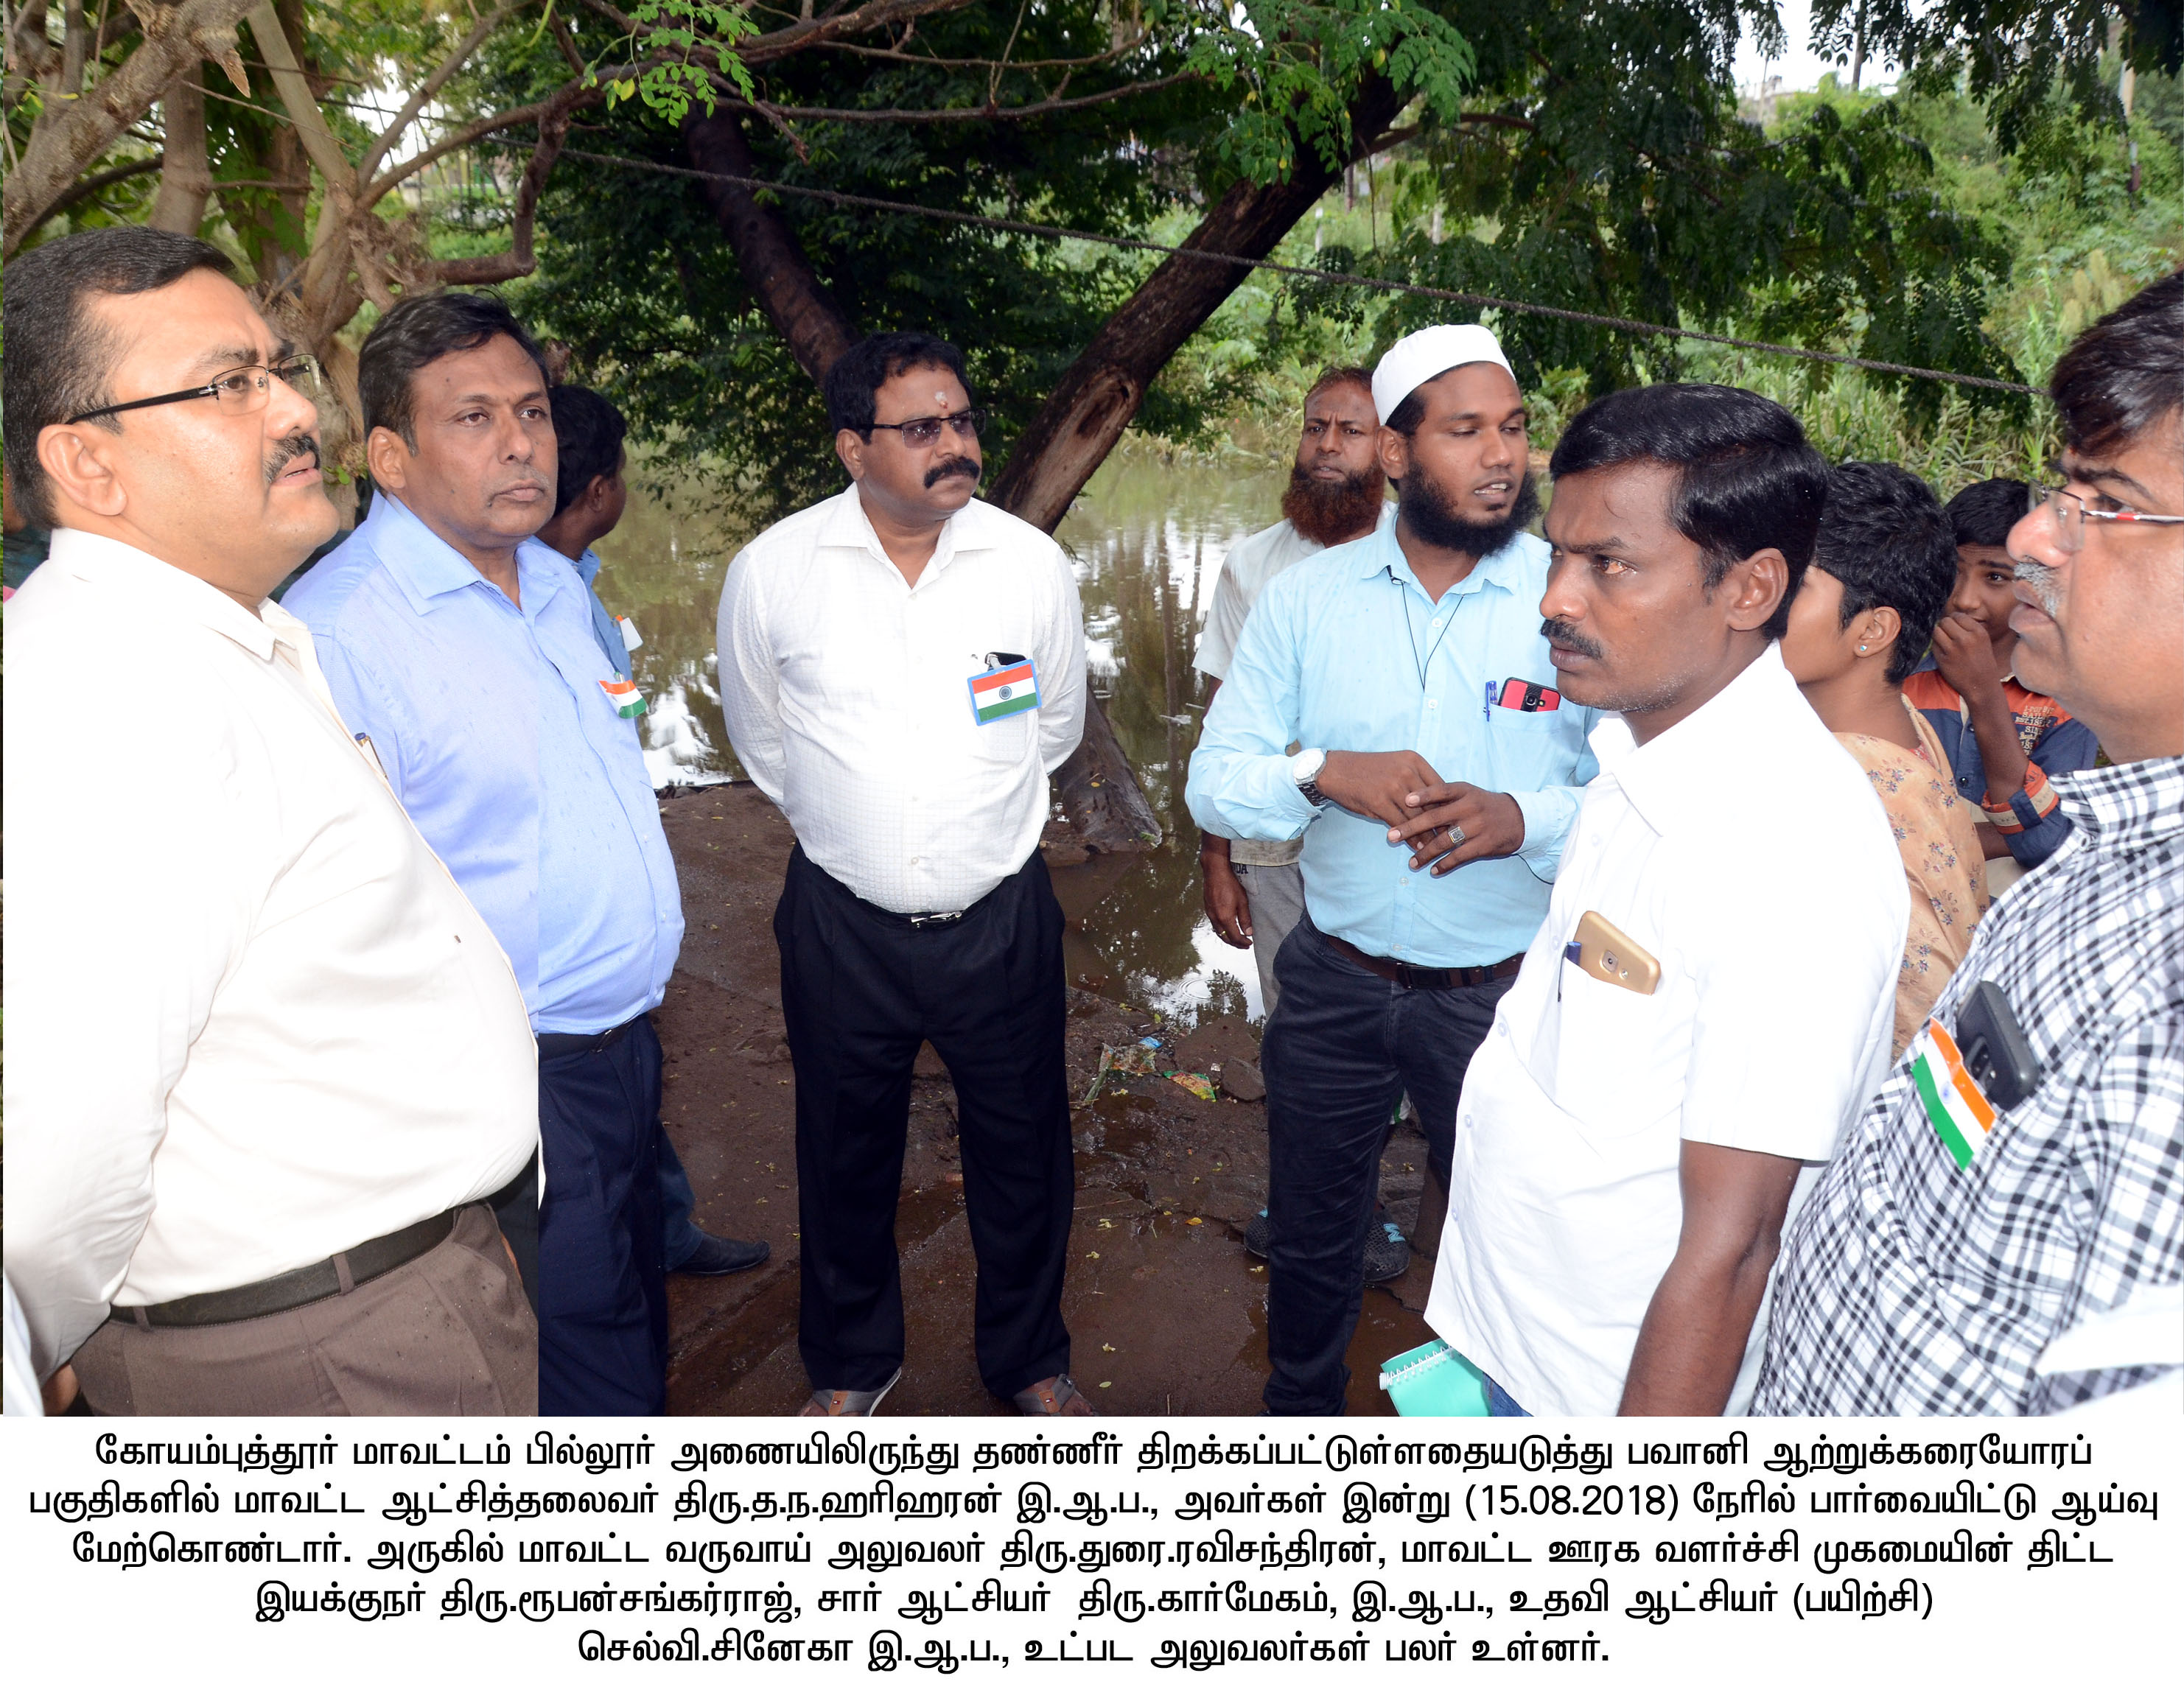 Inspection of Bhavani river flood warning area by the District Collector